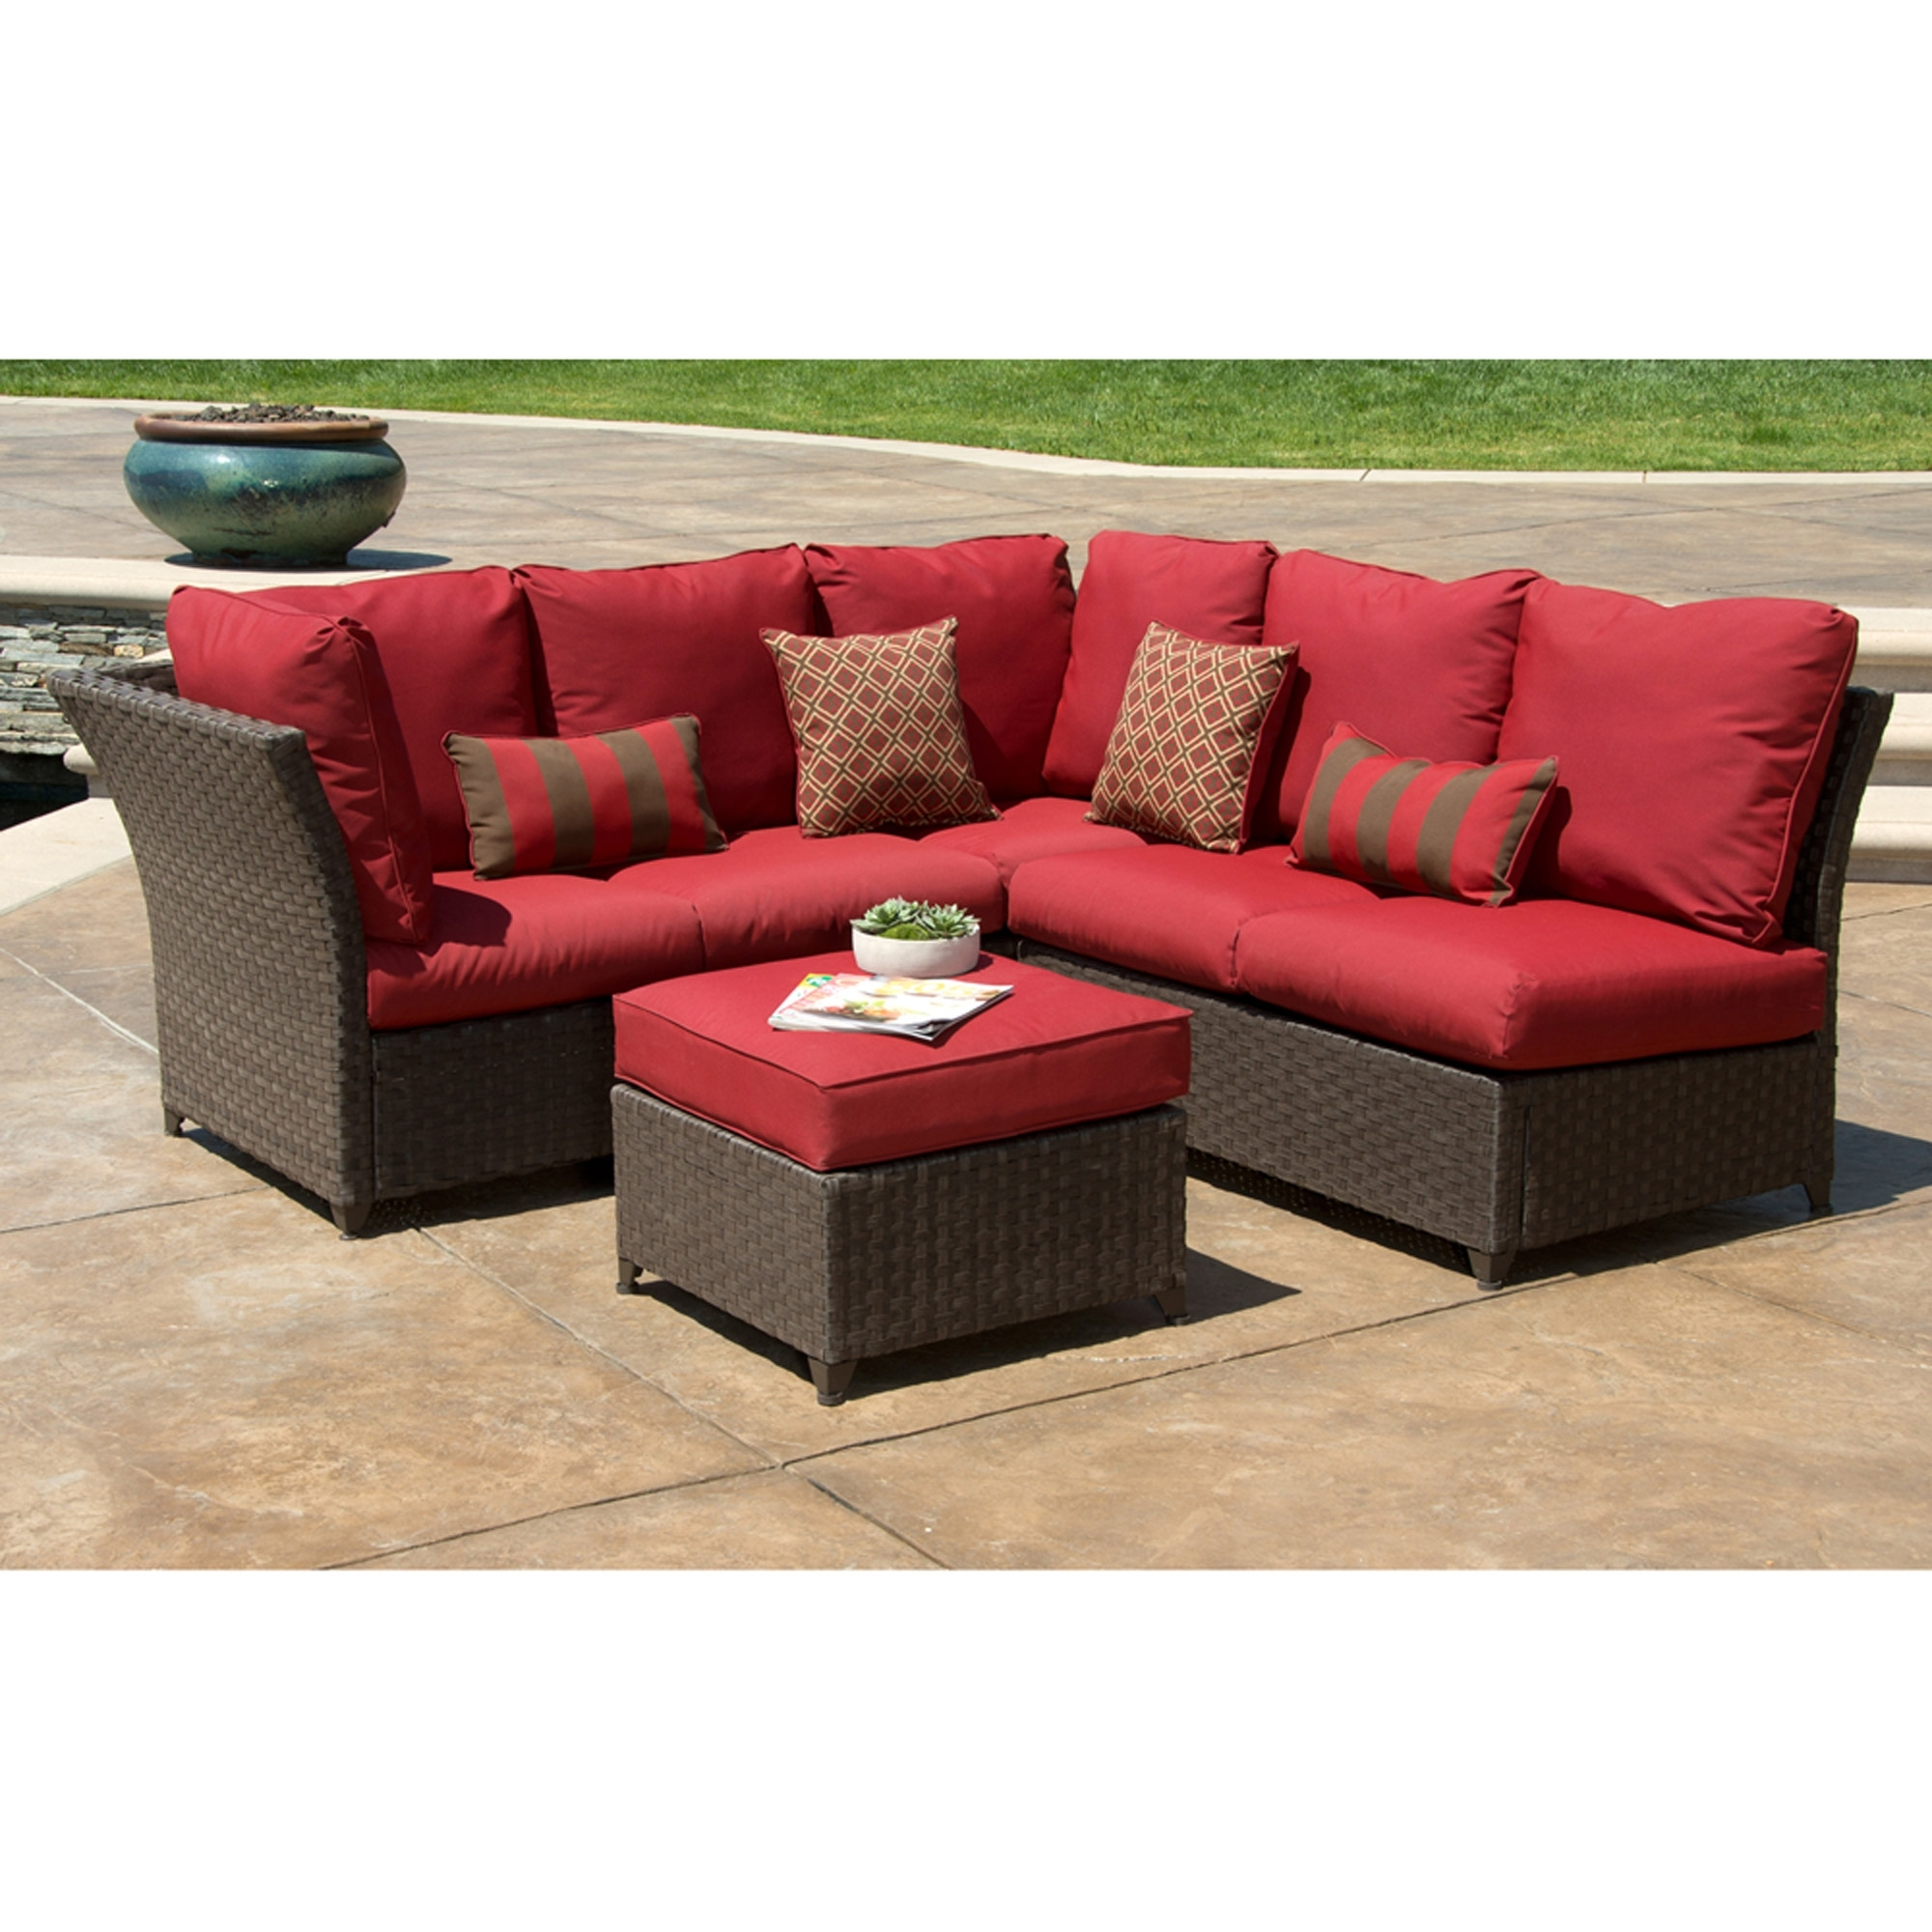 Stunning Walmart Sectional Sofas 30 For Sectional Sofas Tampa Fl Intended For Tampa Fl Sectional Sofas (Image 10 of 10)